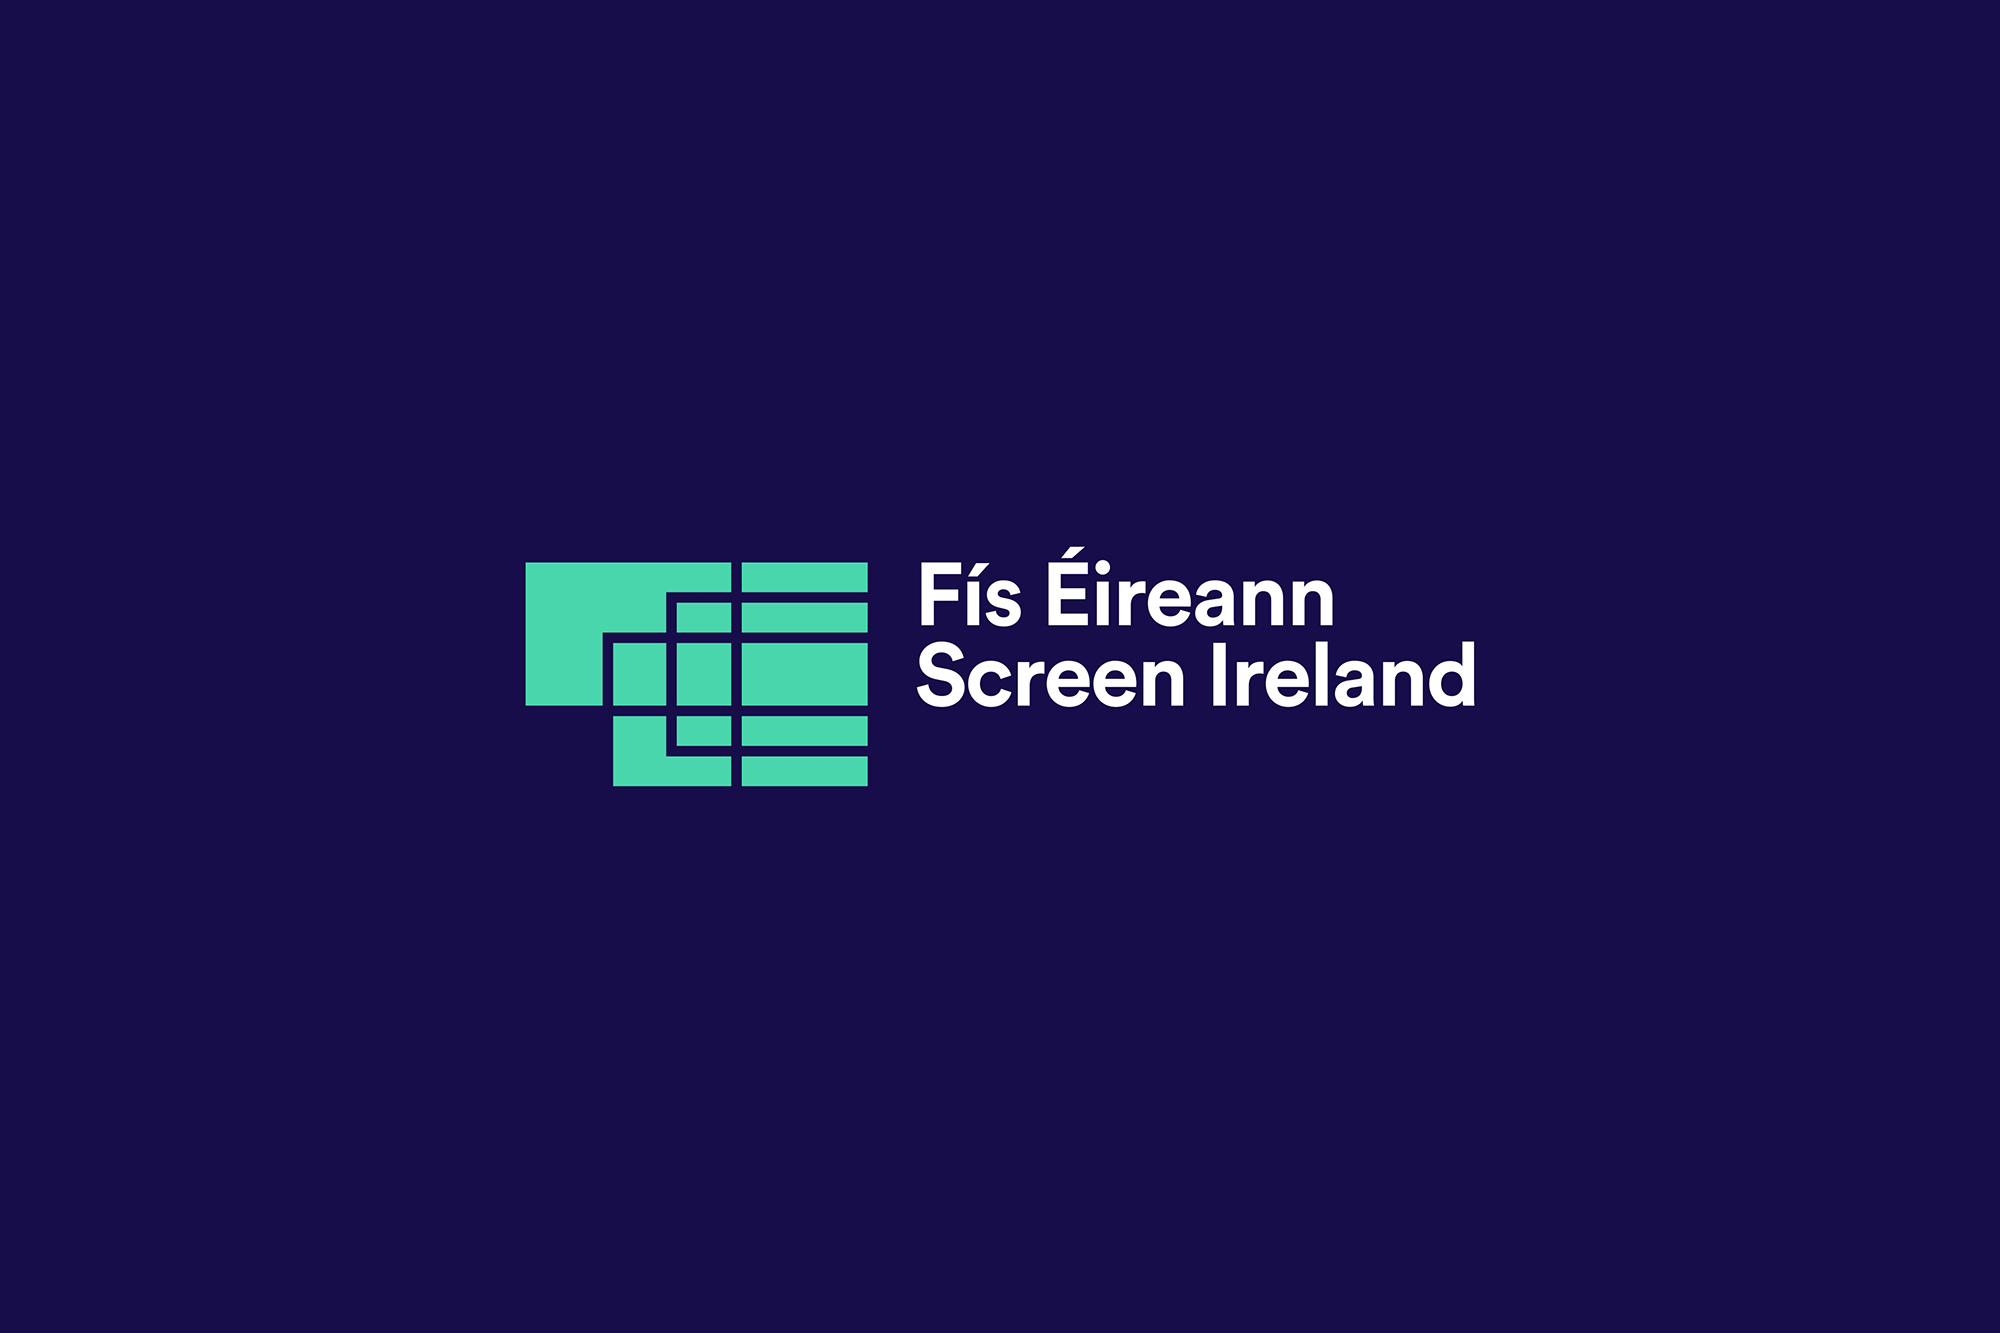 Cover image: Screen Ireland Identity